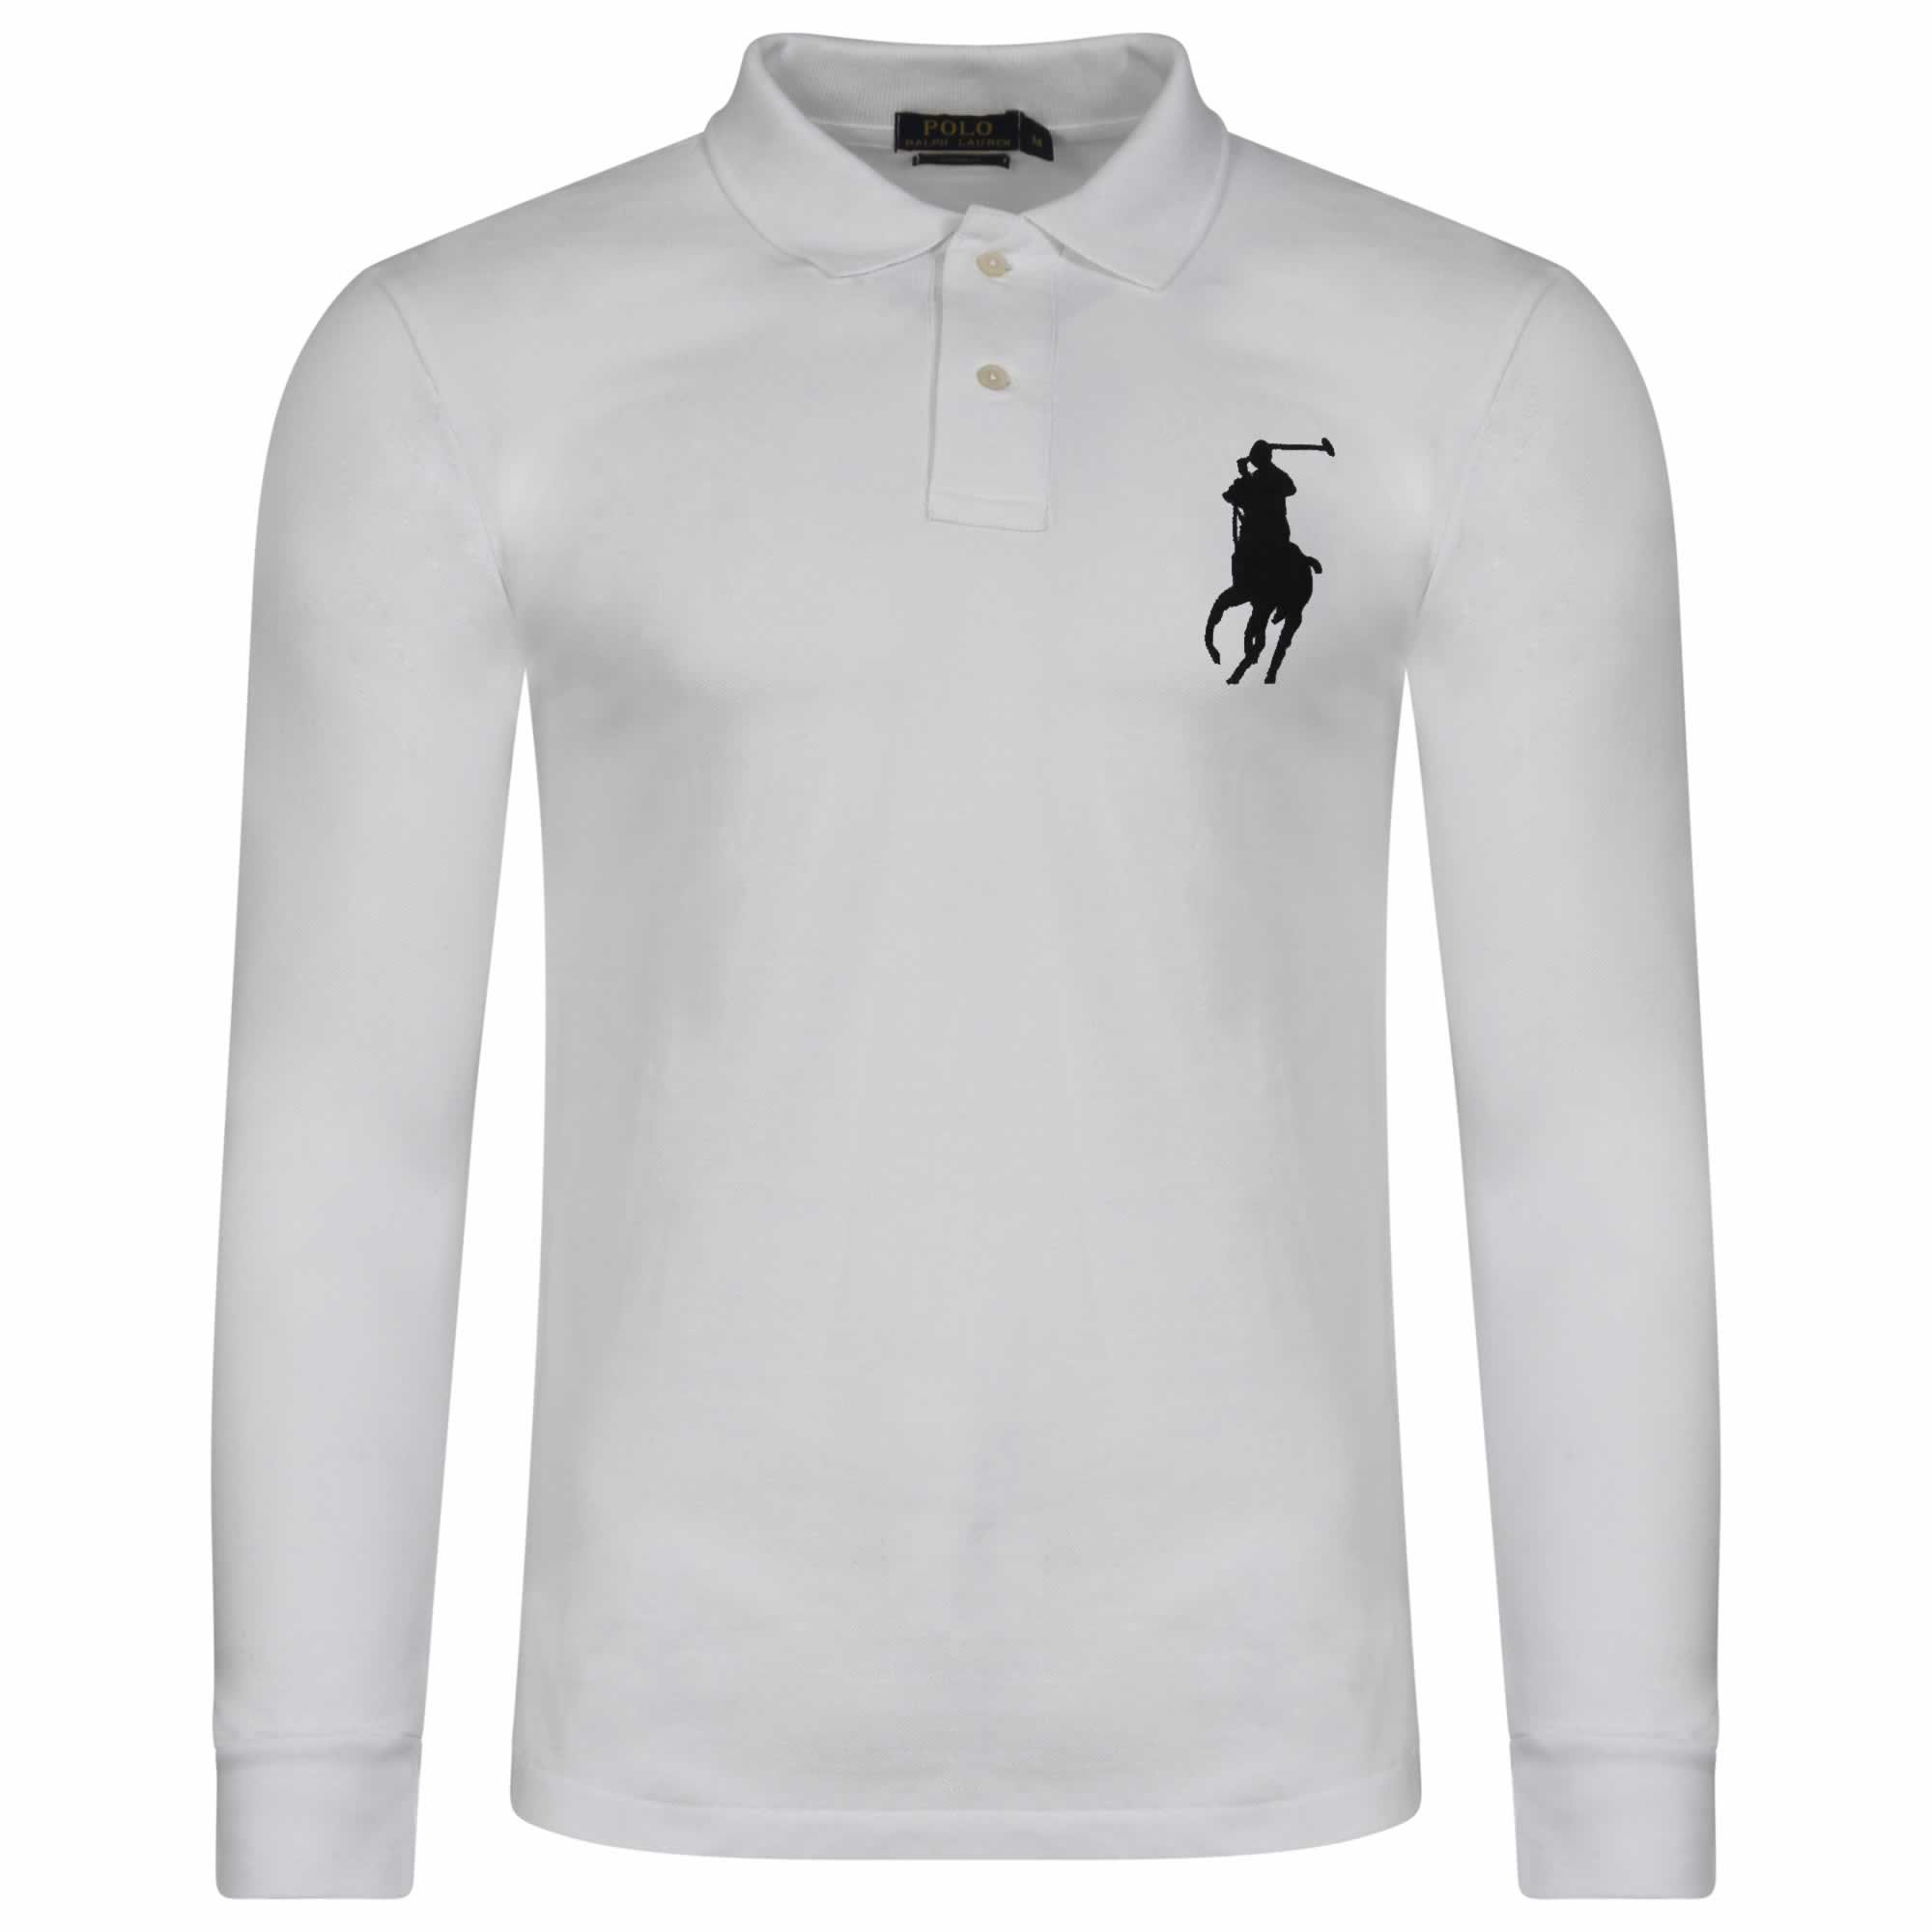 1a863d73d6e2 Ralph Lauren Long Sleeve Big Pony. Polo Shirt. Custom Fit in White |  INTOTO7 Menswear